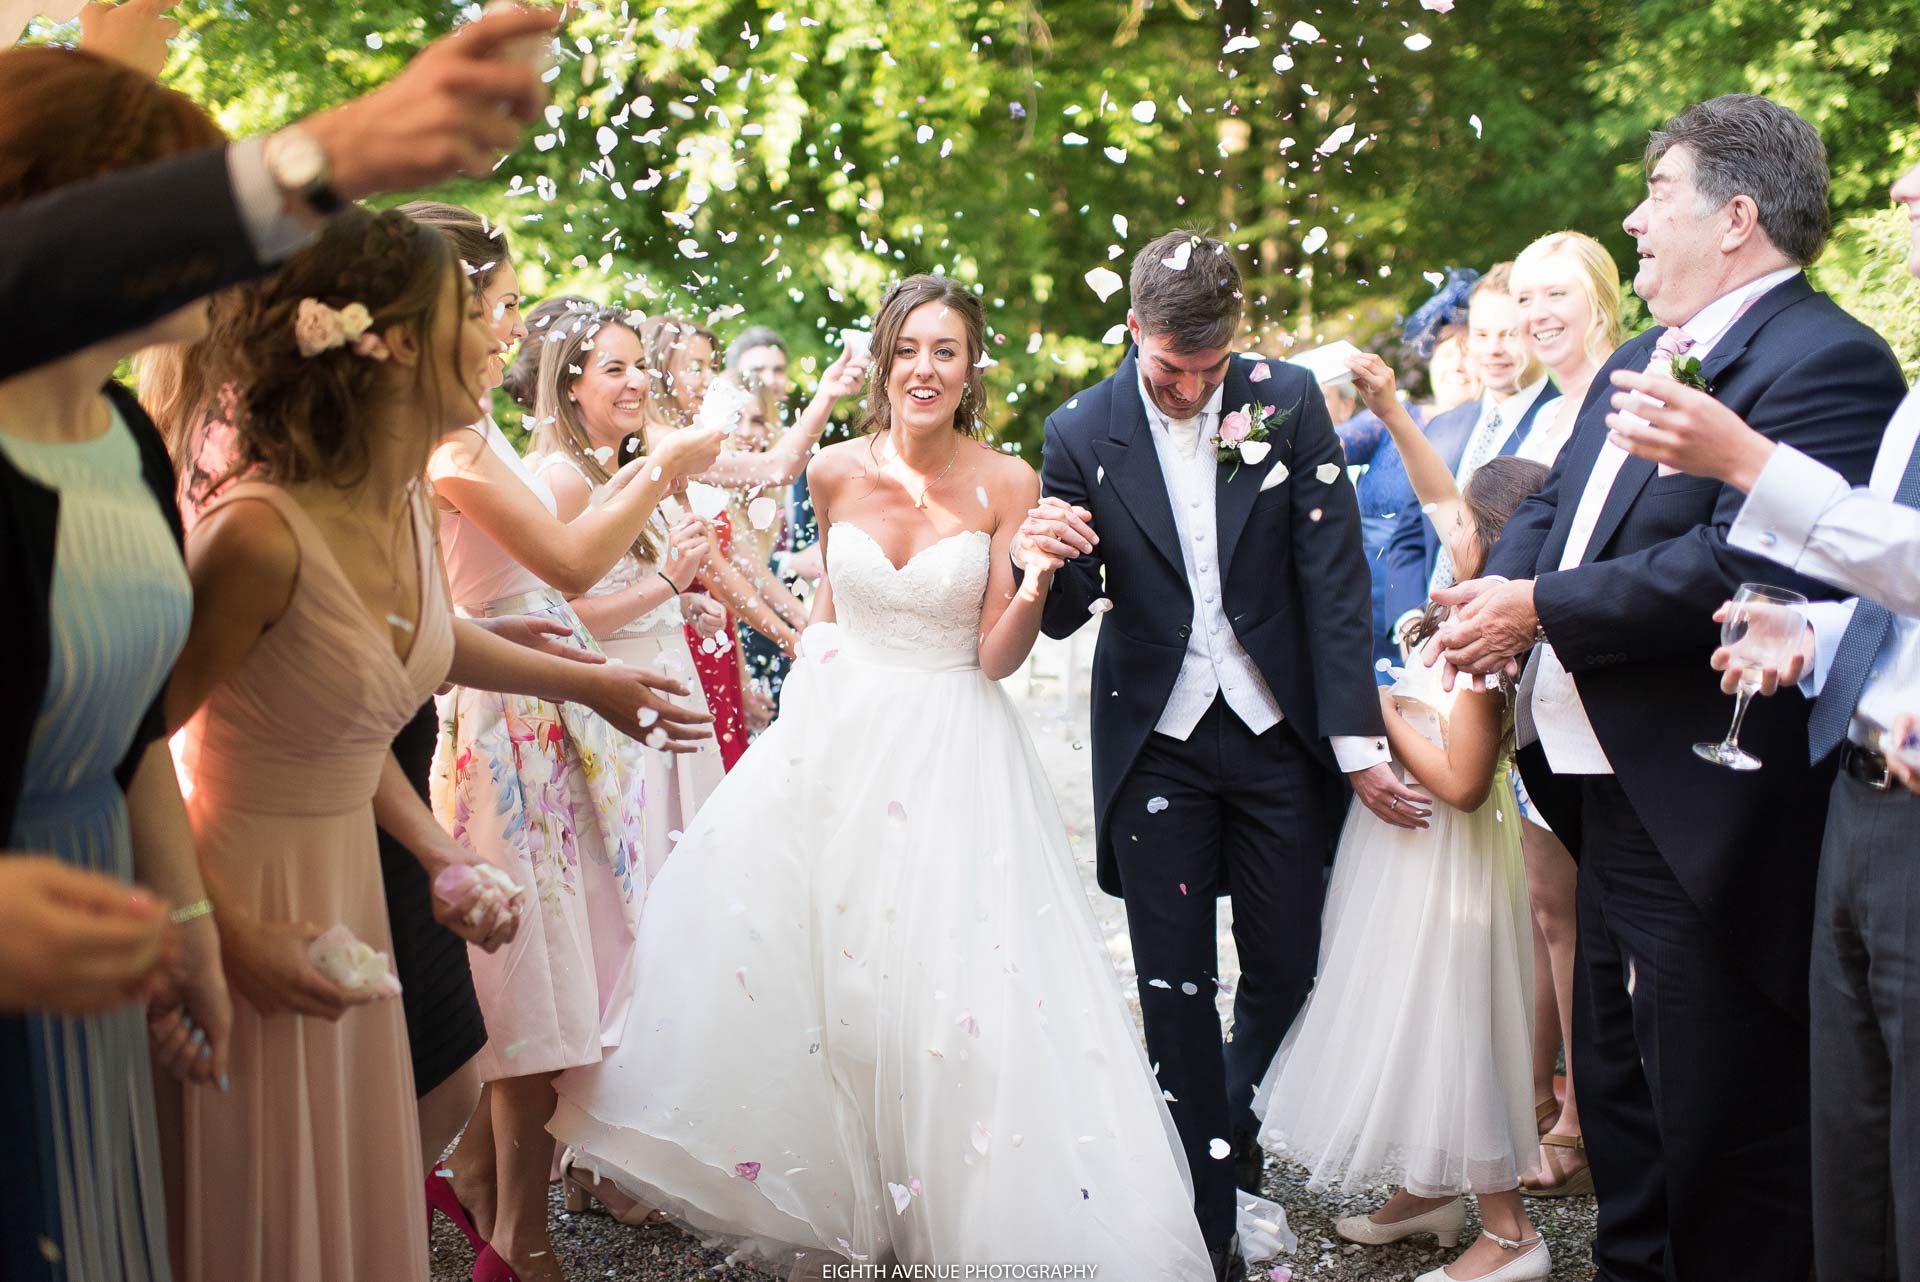 Bride and groom walking through confetti